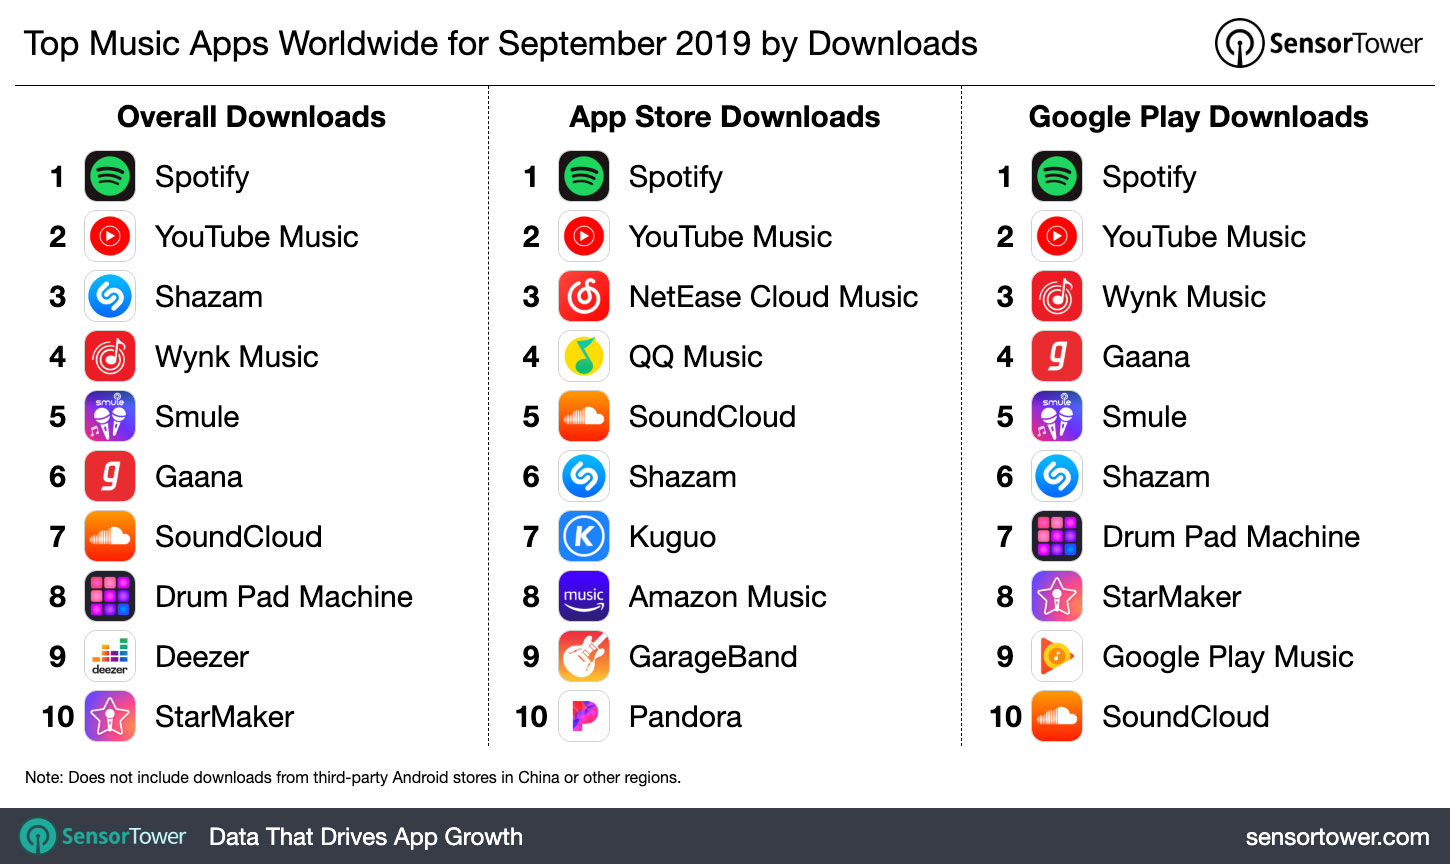 Top Music Apps Worldwide For September 2019 By Downloads